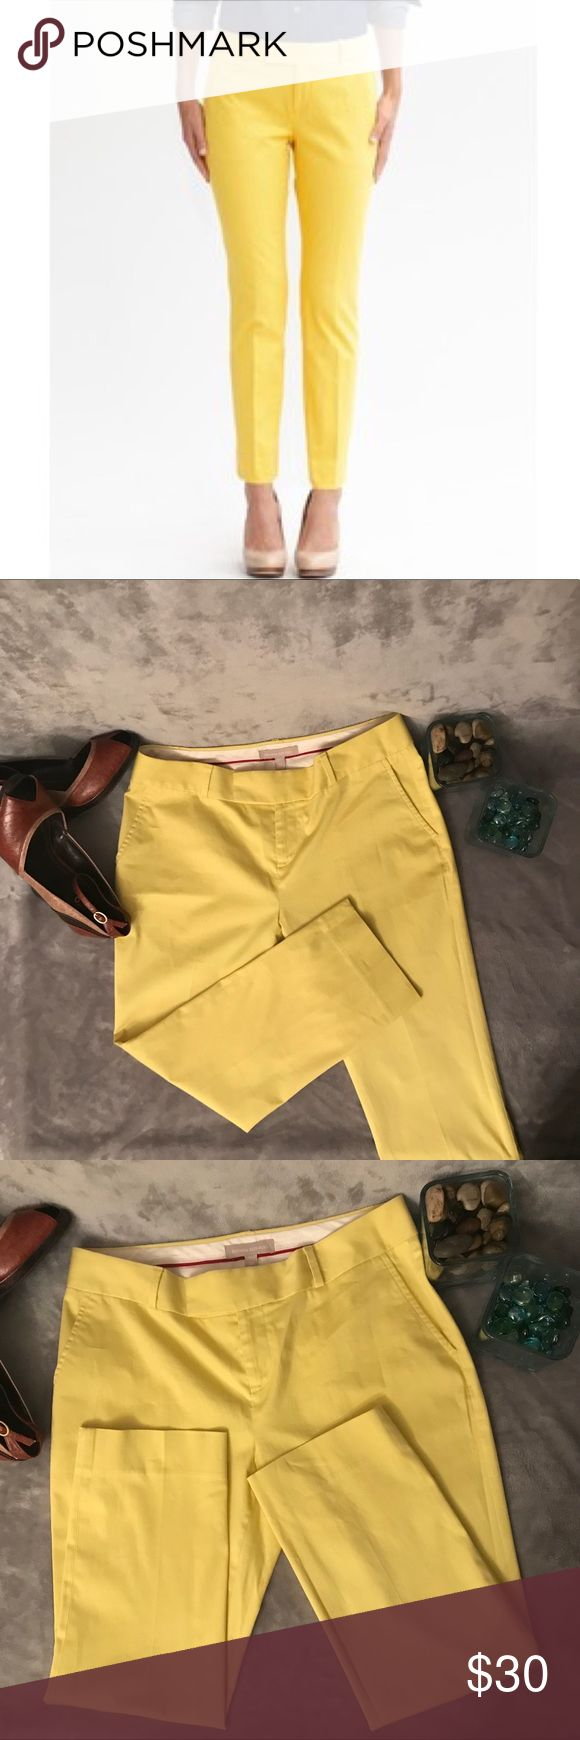 "Banana Republic Hampton Ankle Pants Gorgeous Hampton fit pants in this fabulous yellow are the perfect addition to your work wardrobe. These pants are in excellent condition- cared for in a smoke-free home. *Color: Moon Yellow *Inseam: 23.5"" [R101] Banana Republic Pants Ankle & Cropped"